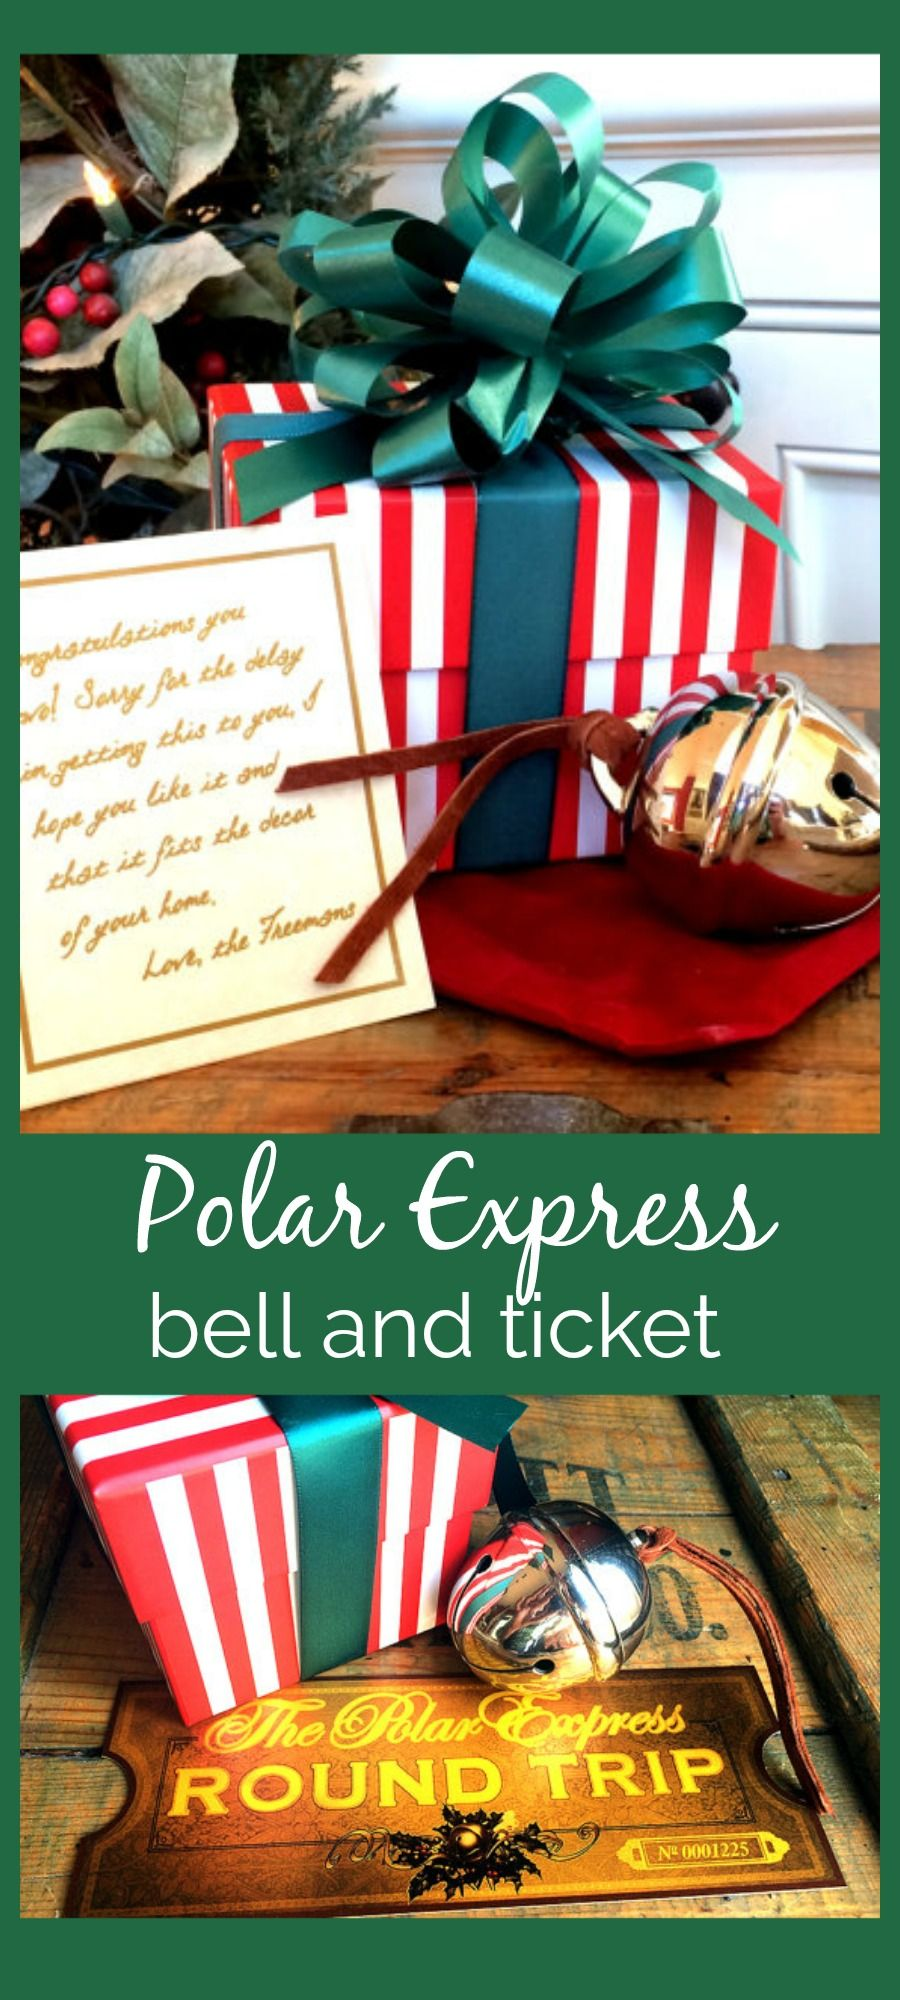 first gift of christmas sleigh bell gift set bringing the polar express to real life i am amazed by this it even comes wit a certificate of authenticity